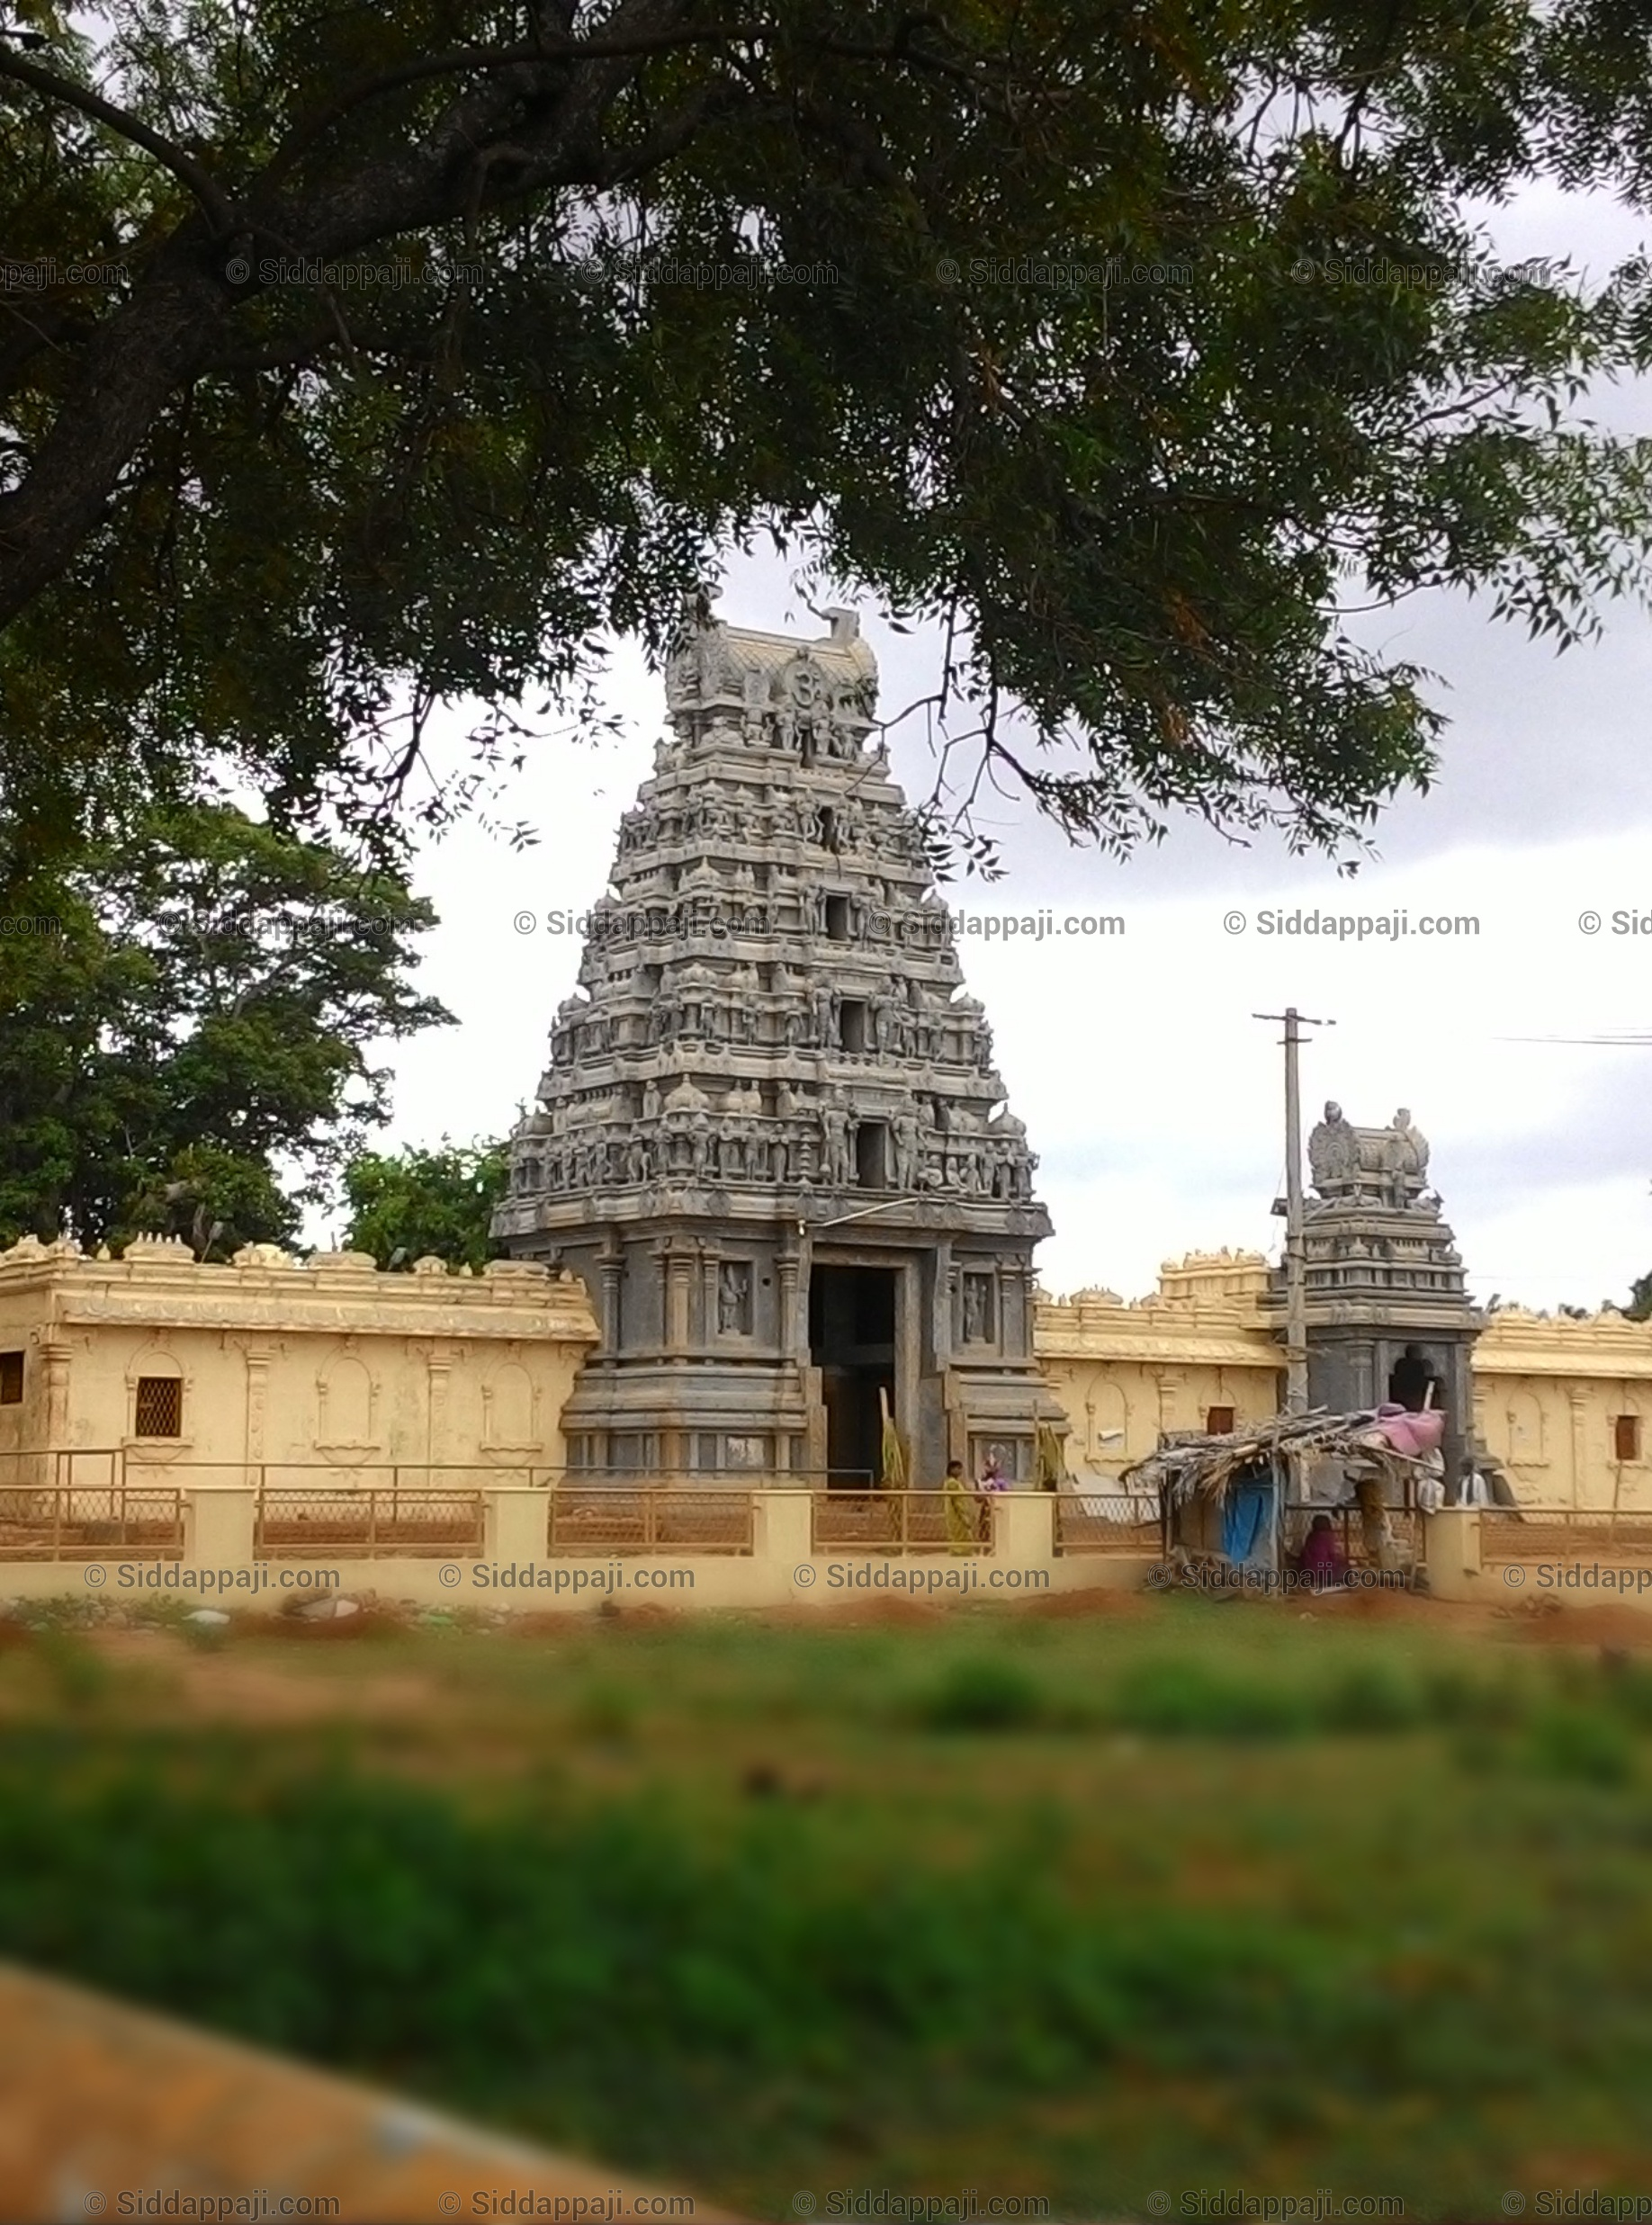 Sri Siddappaji Temple New matt Chikkaluru